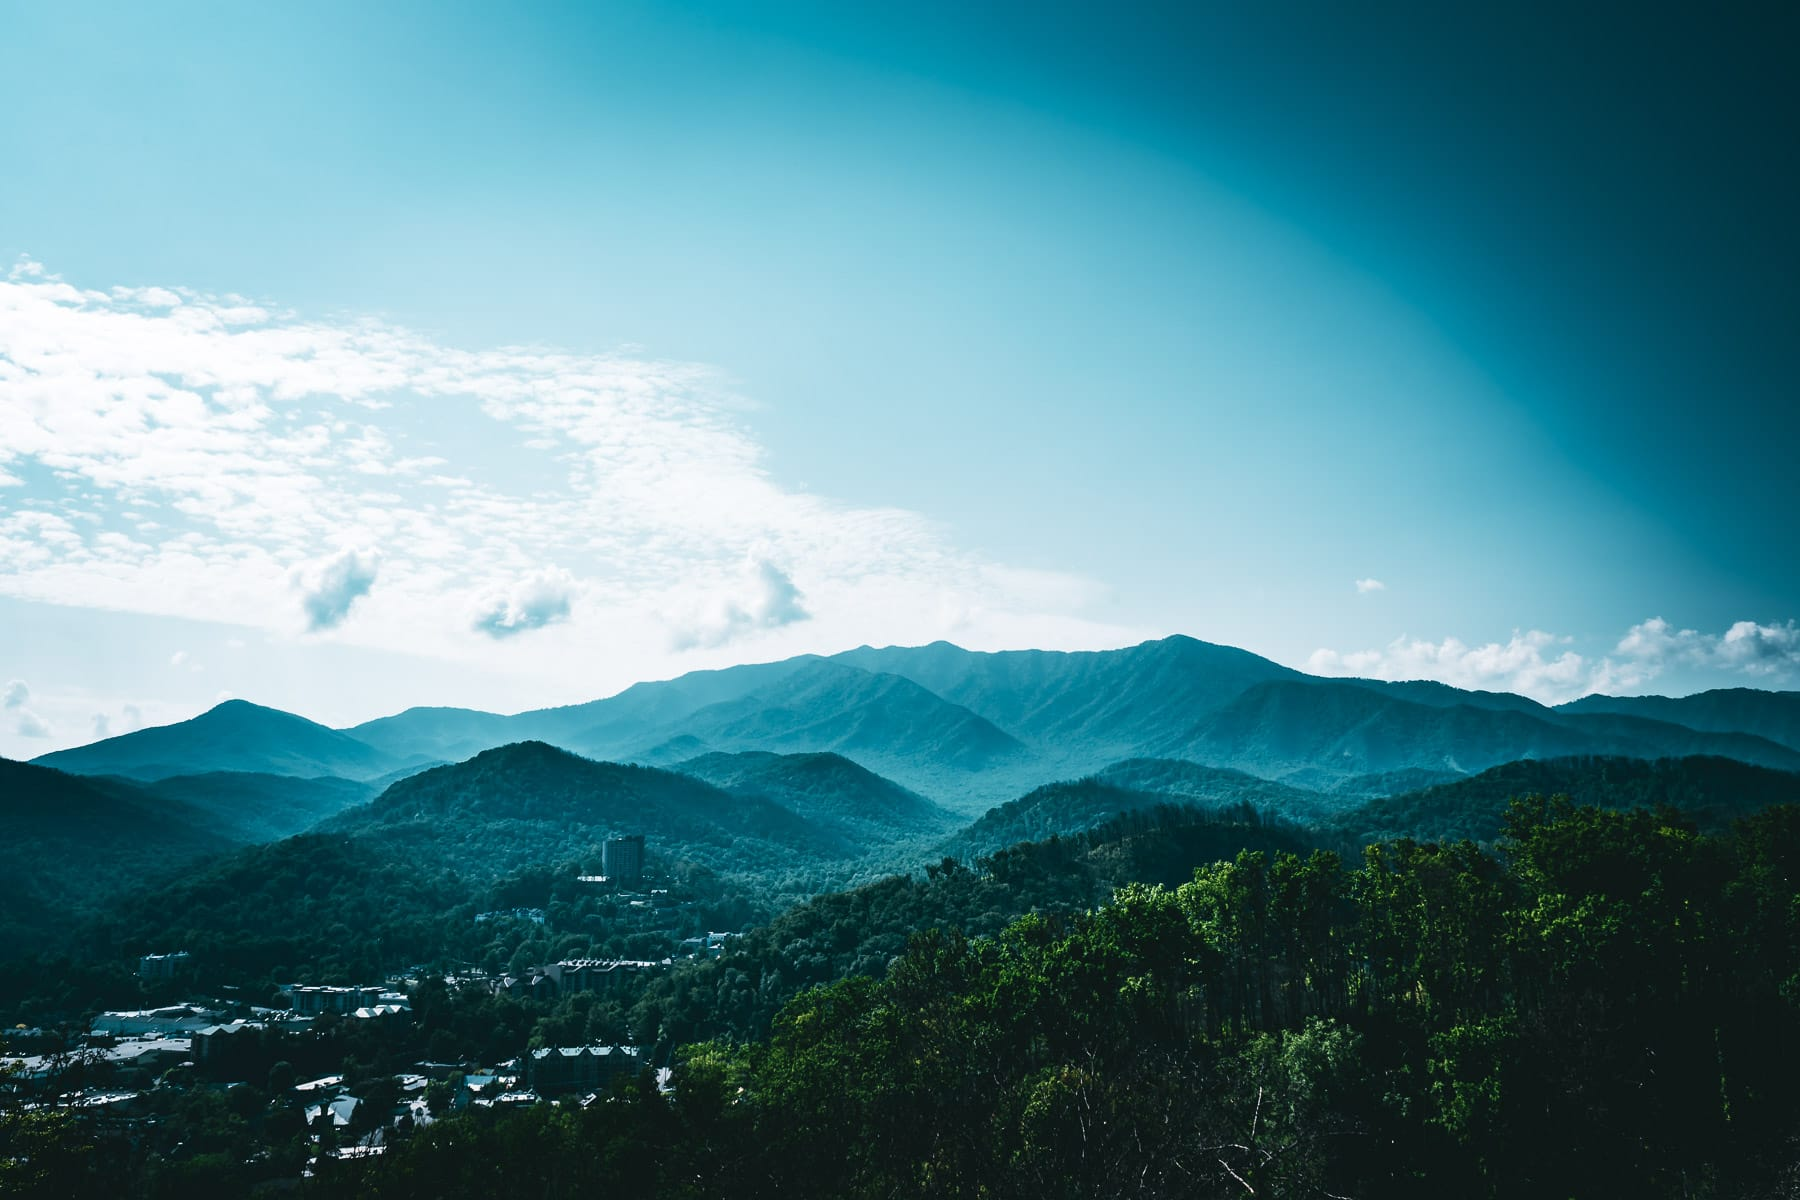 Gatlinburg, Tennessee, nestled in the hazy Great Smoky Mountains.